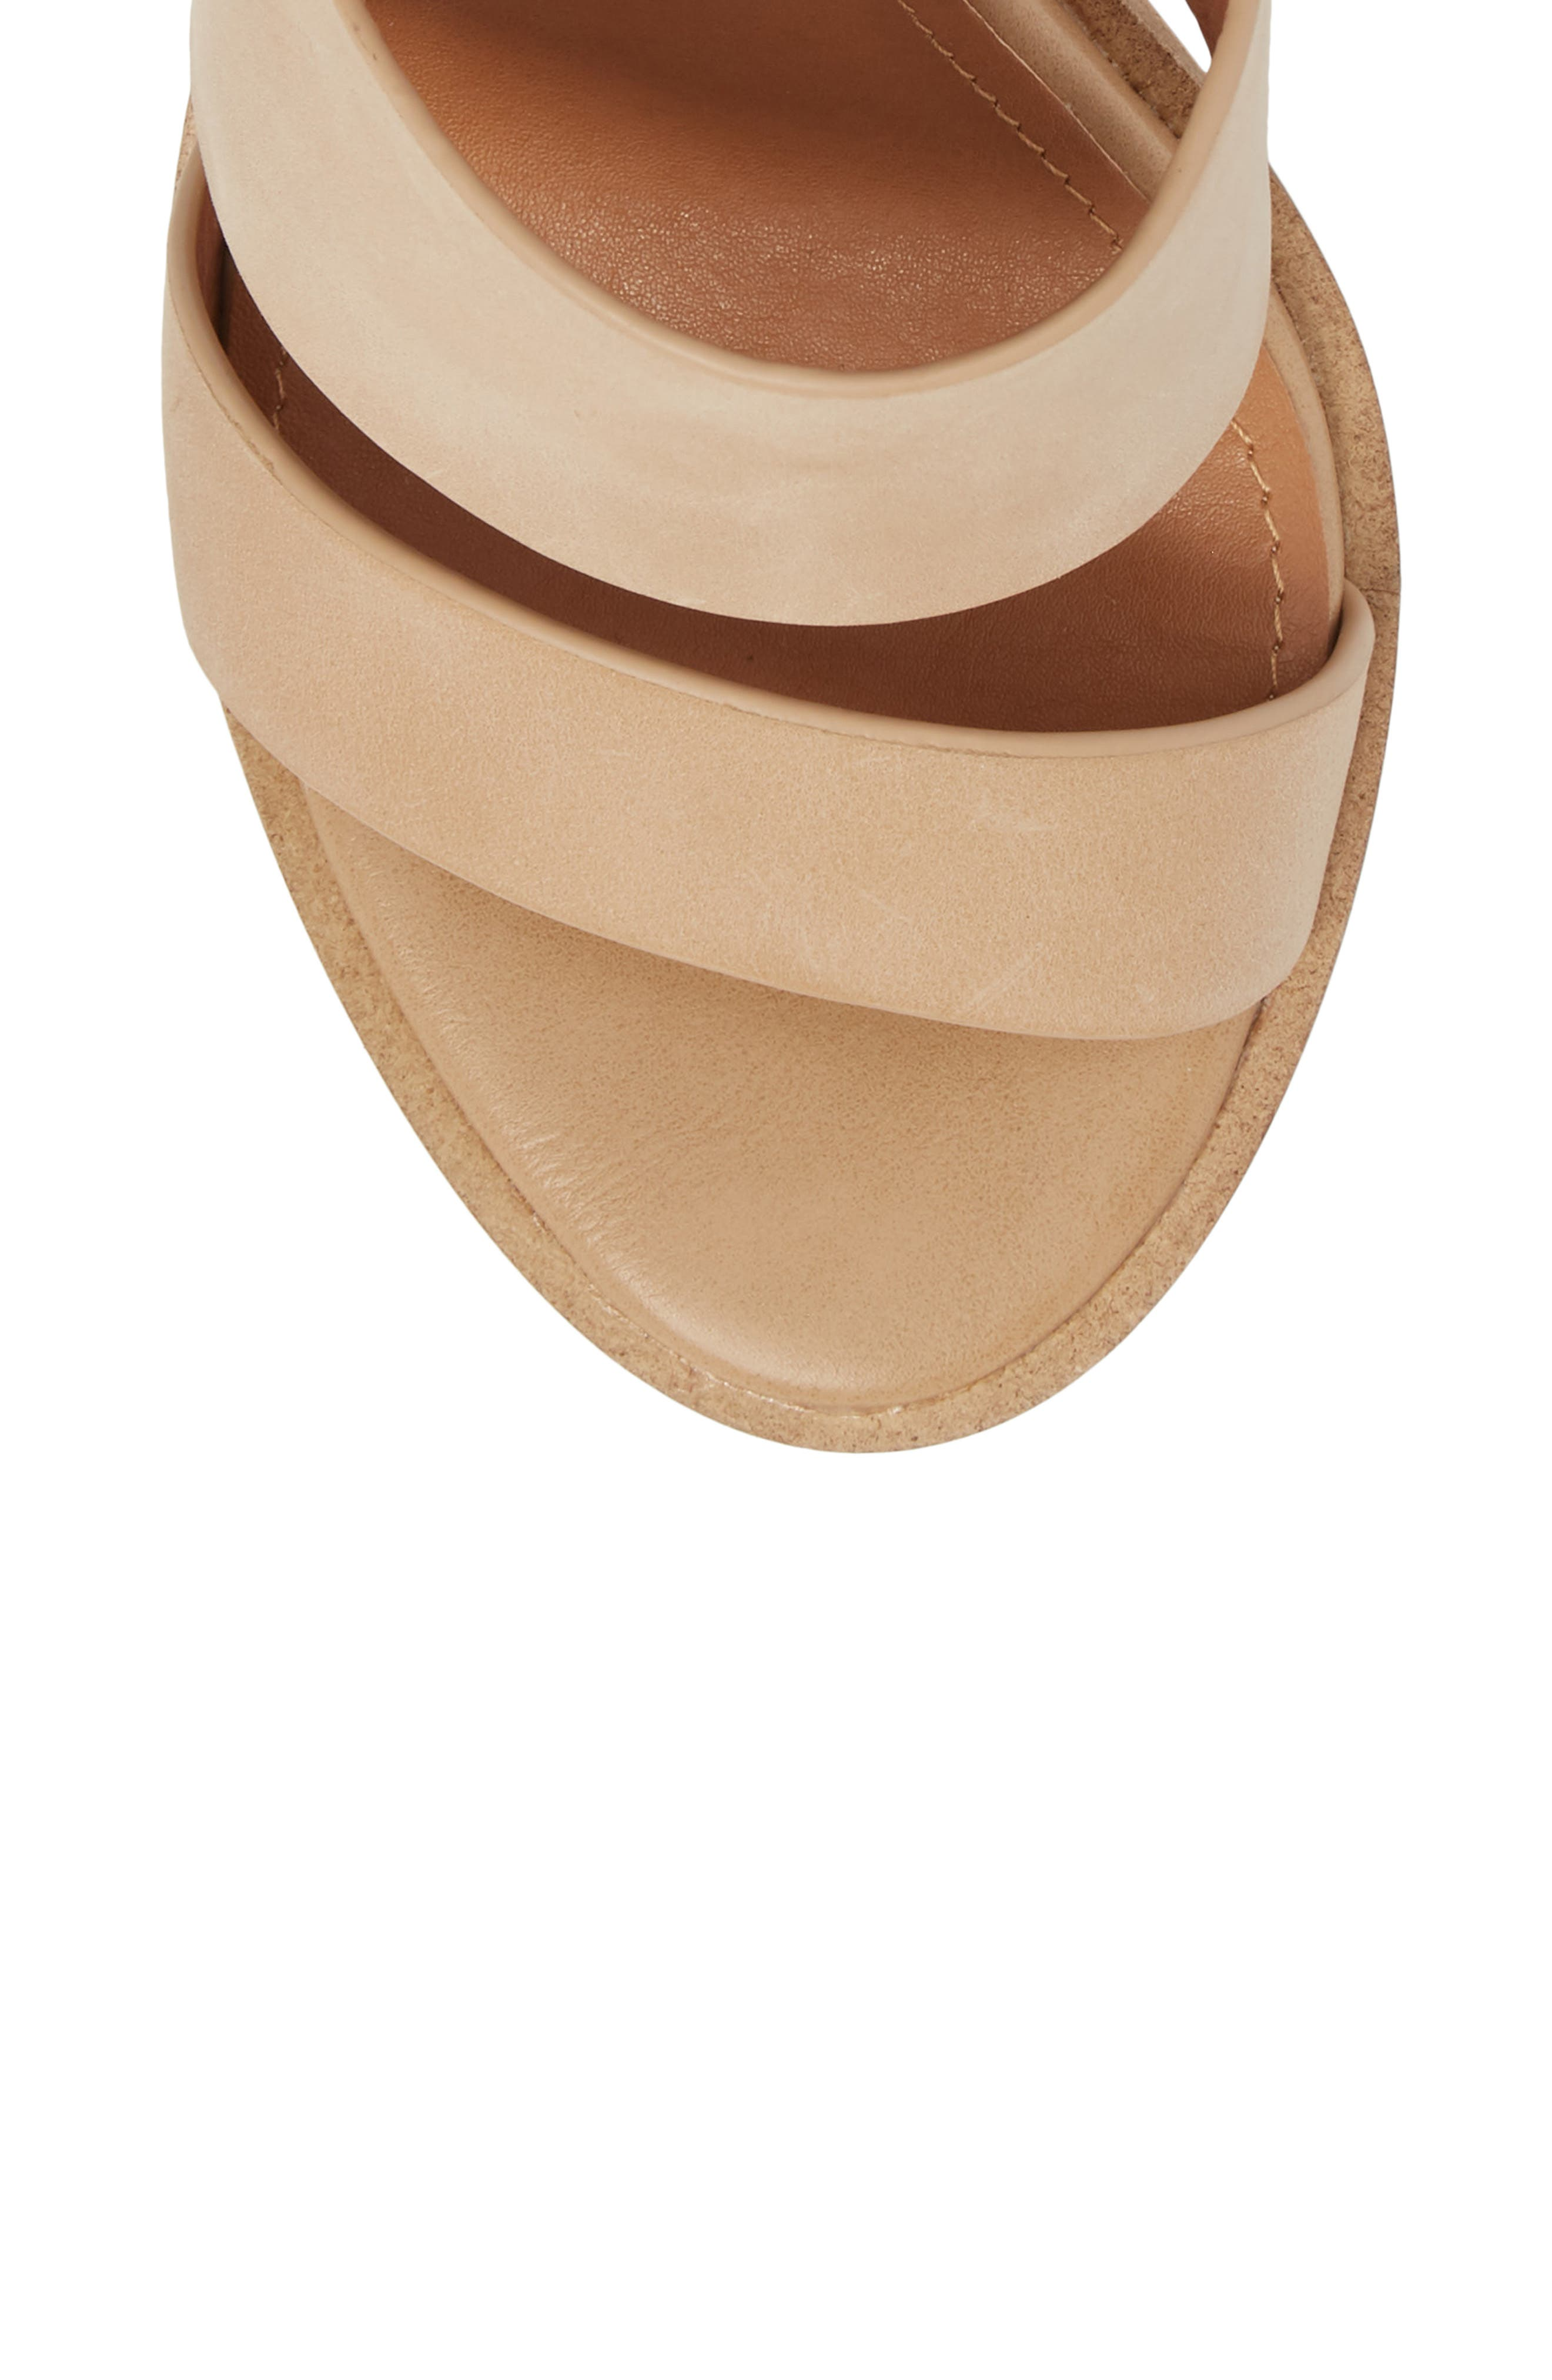 Admiral Ankle Wrap Sandal,                             Alternate thumbnail 5, color,                             Natural Leather